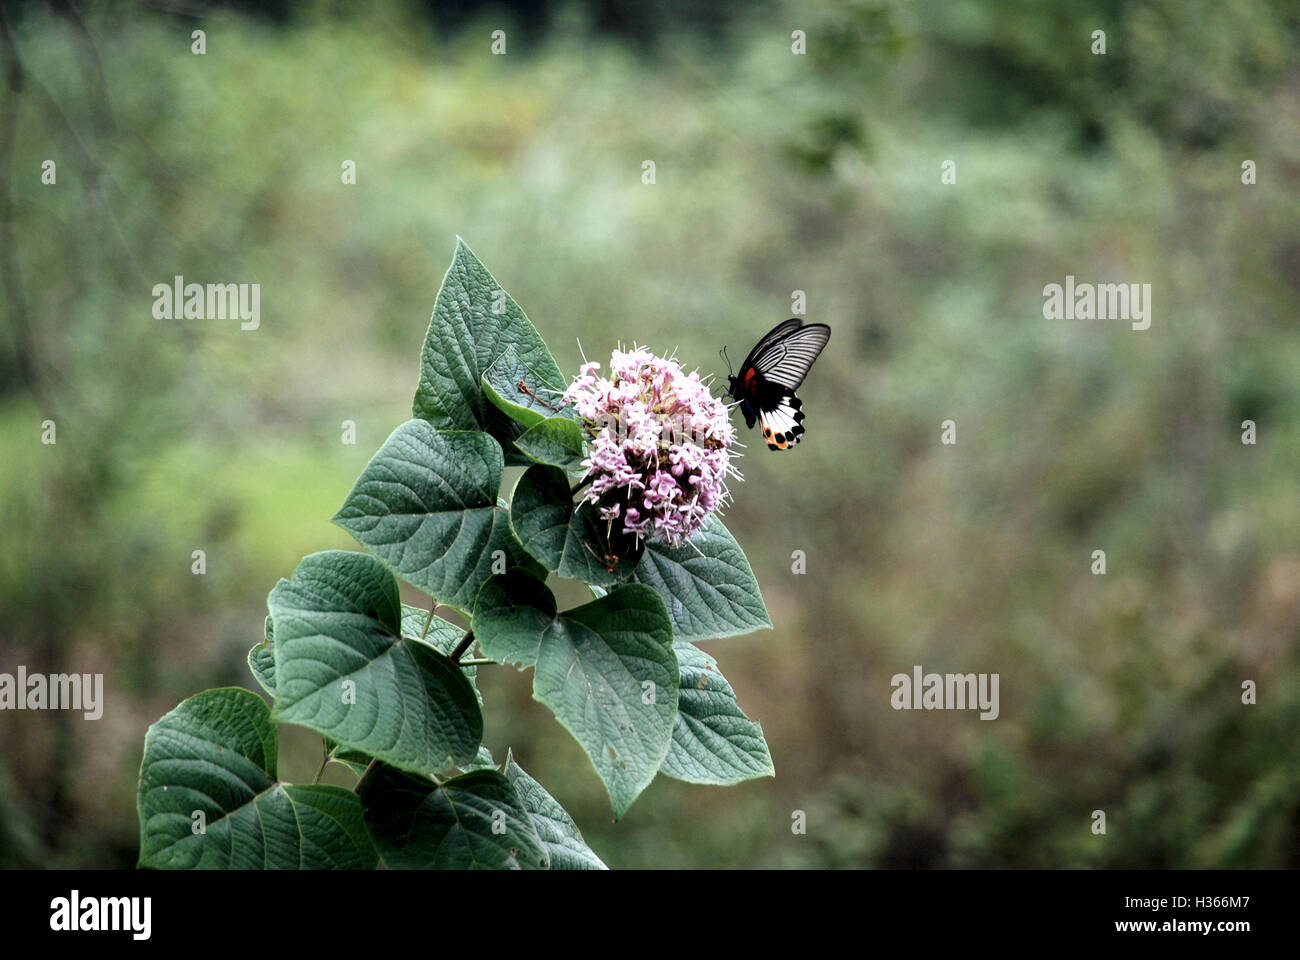 A native species of butterfly pollinates a pink flower typical of the flora found around the Yulong River in Guangxi, - Stock Image